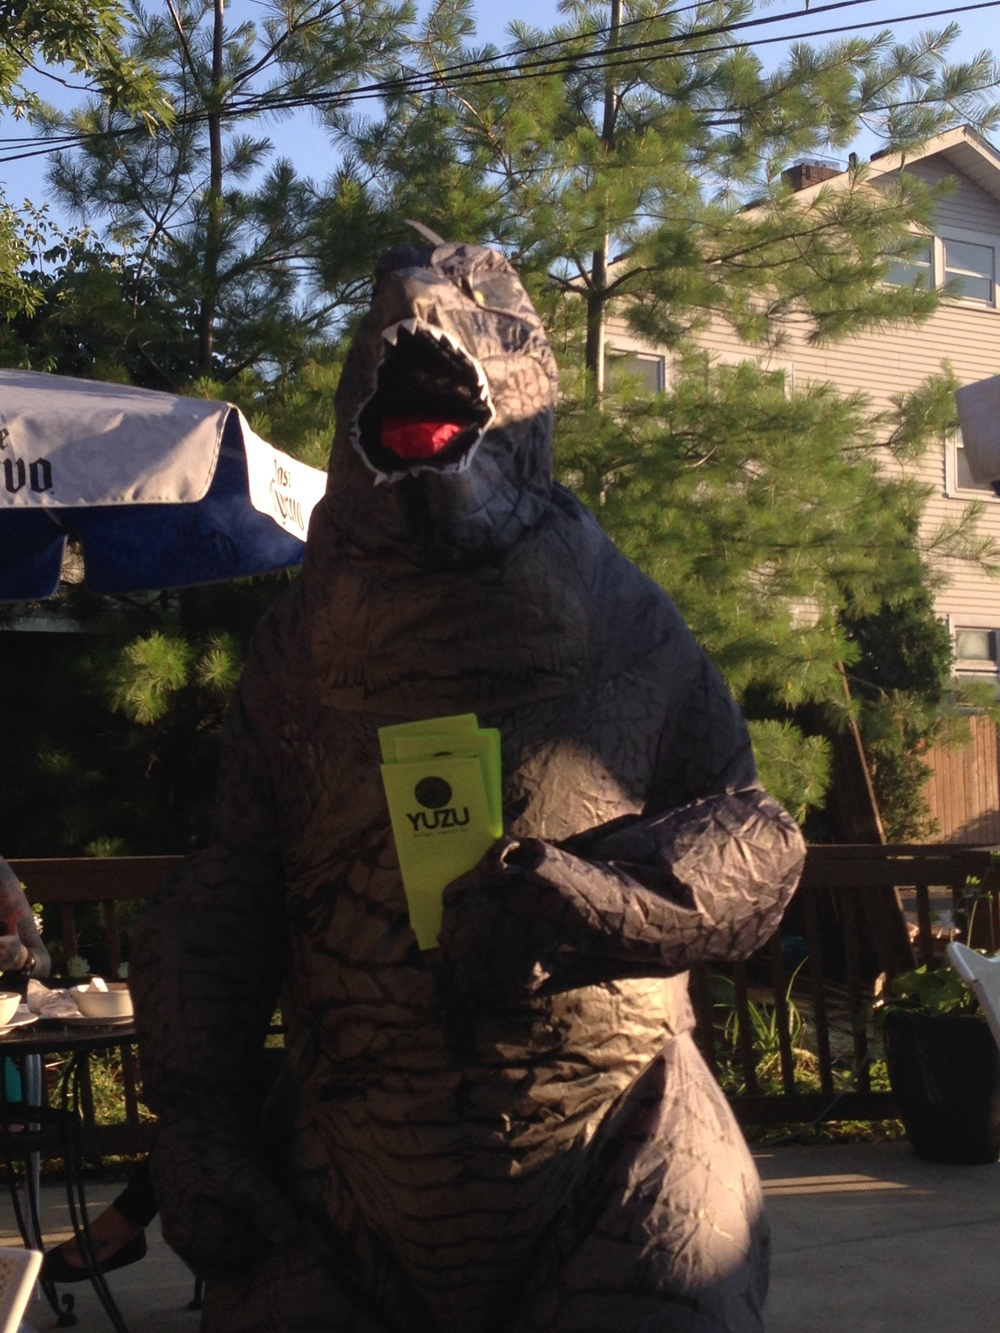 Spotted: Godzilla, at Yuzu